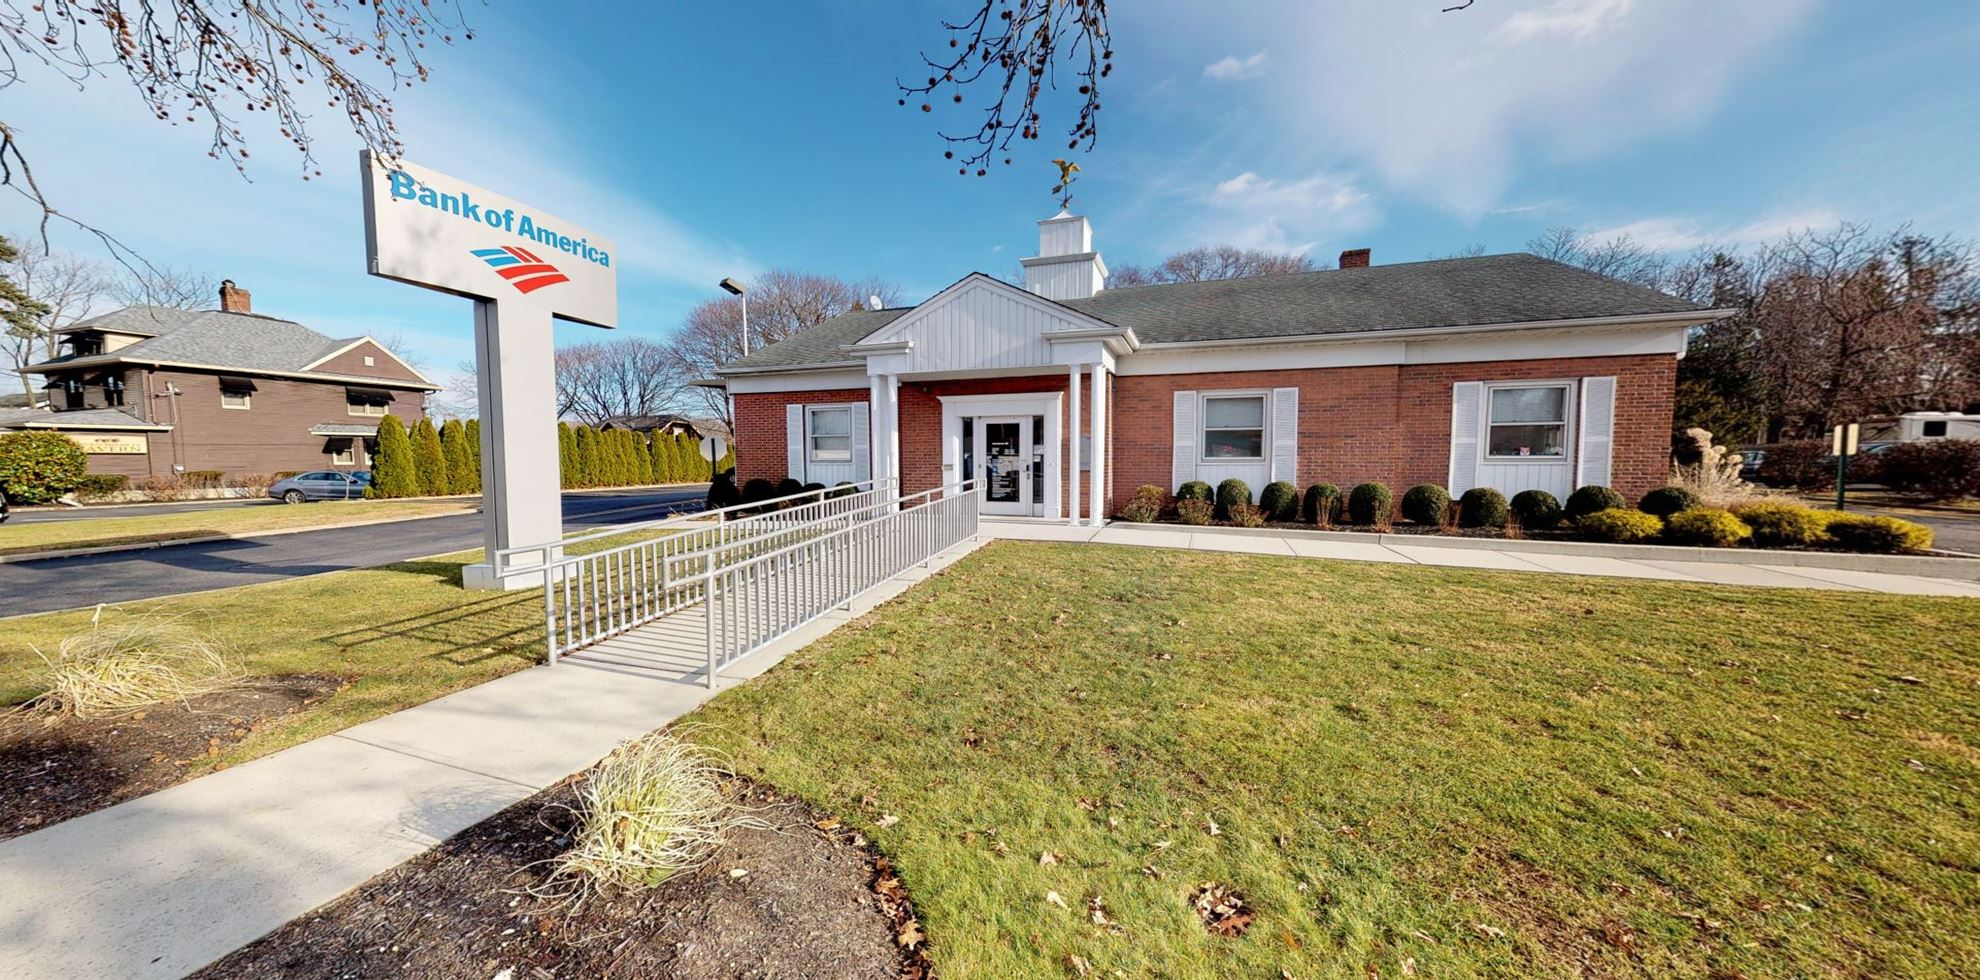 Bank of America financial center with drive-thru ATM | 680 Fort Salonga Rd, Northport, NY 11768